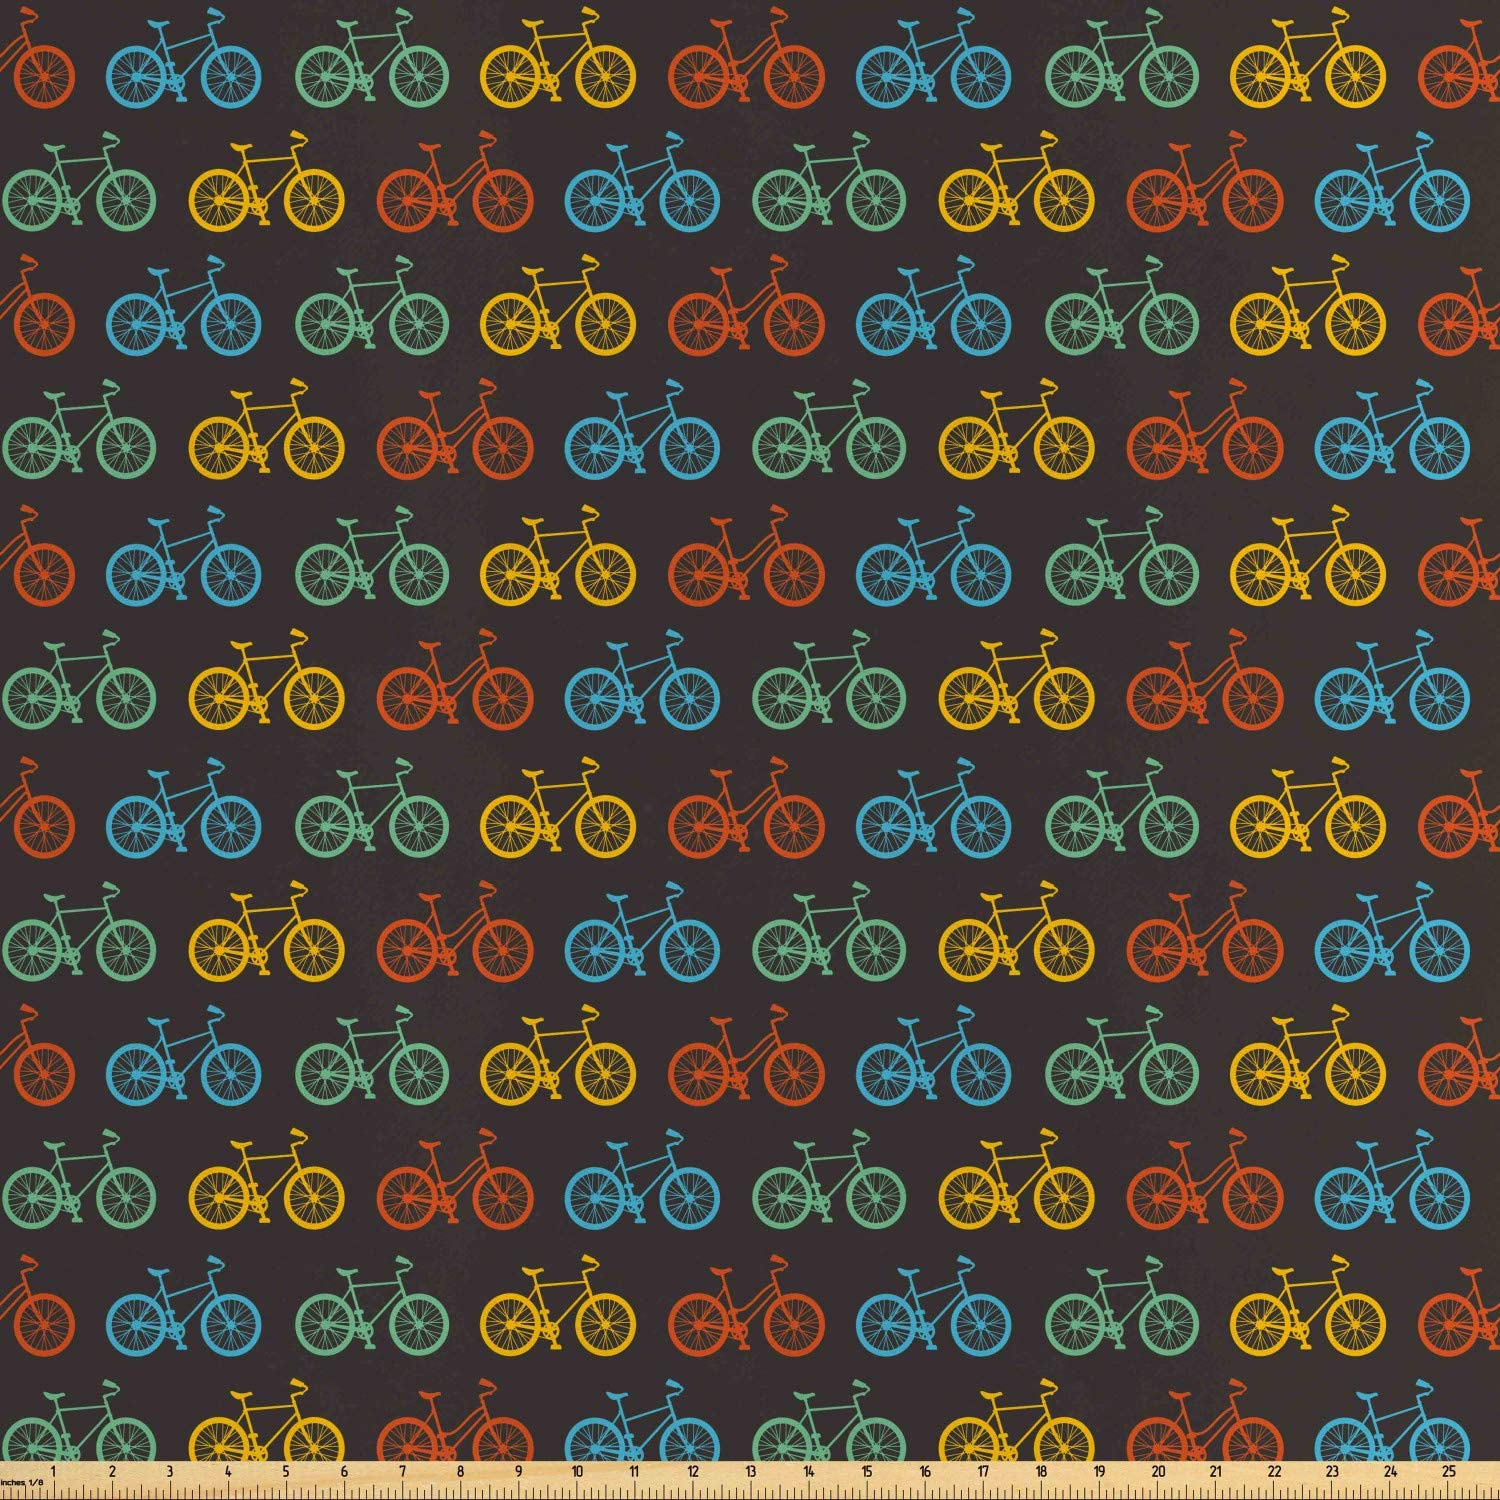 Ambesonne Bicycle Fabric by The Yard, Parading Boys and Girls Bicycle Silhouettes in Vivid Colors on Black Background, Decorative Satin Fabric for Home Textiles and Crafts, Multicolor